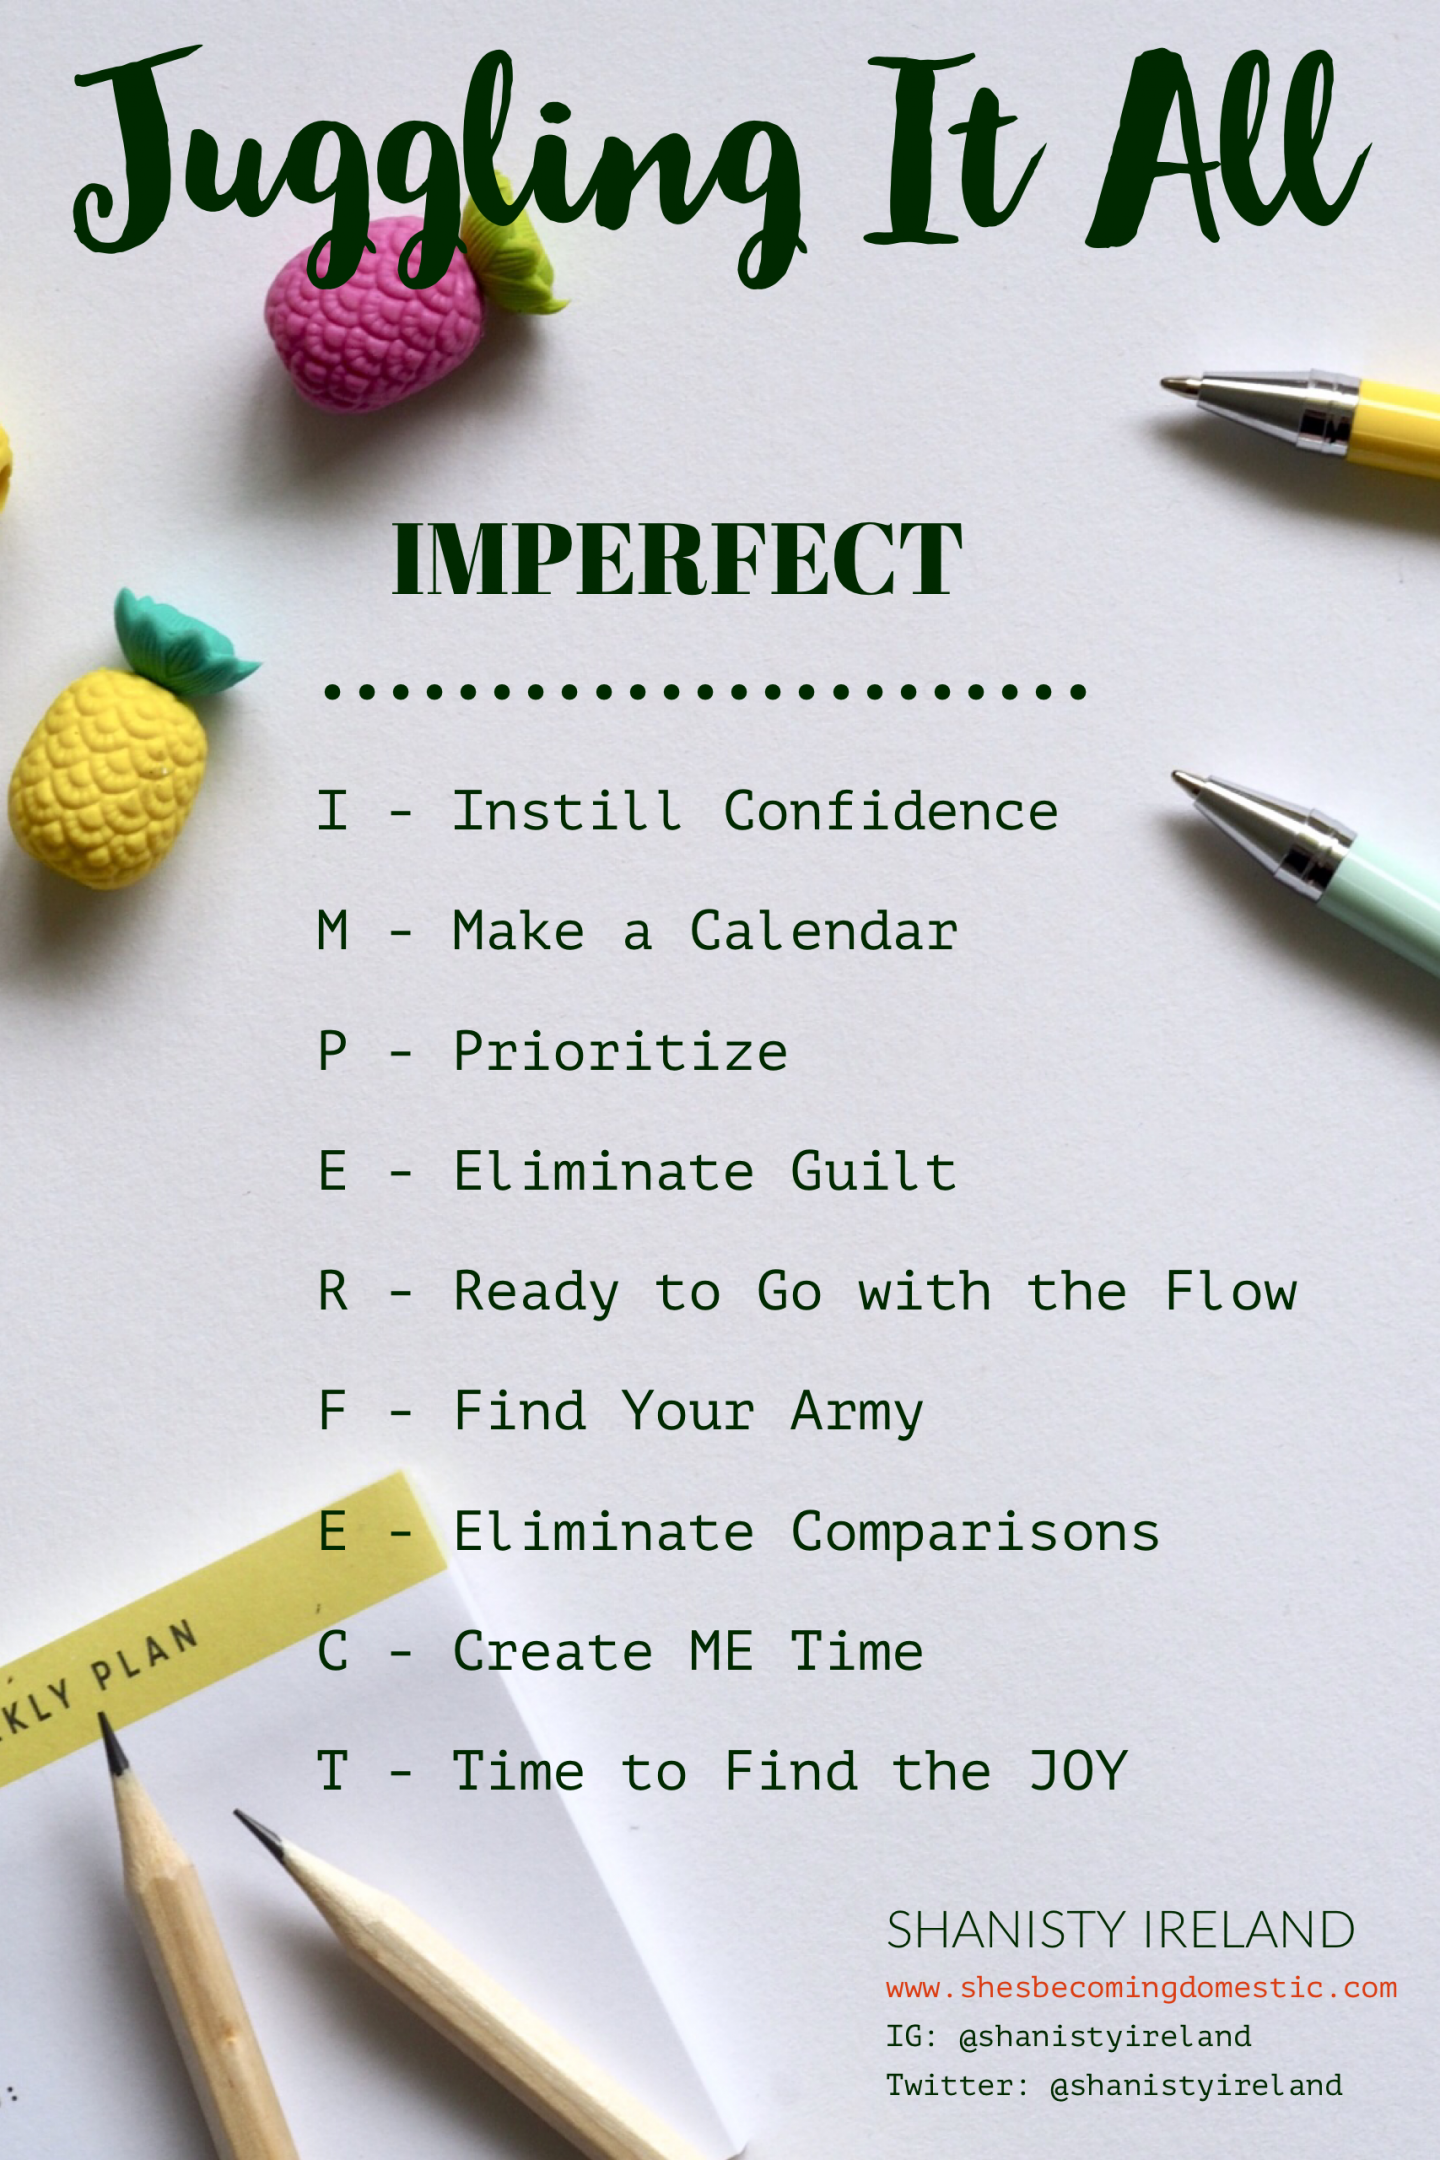 IMPERFECT – 9 simple steps to making it all work!